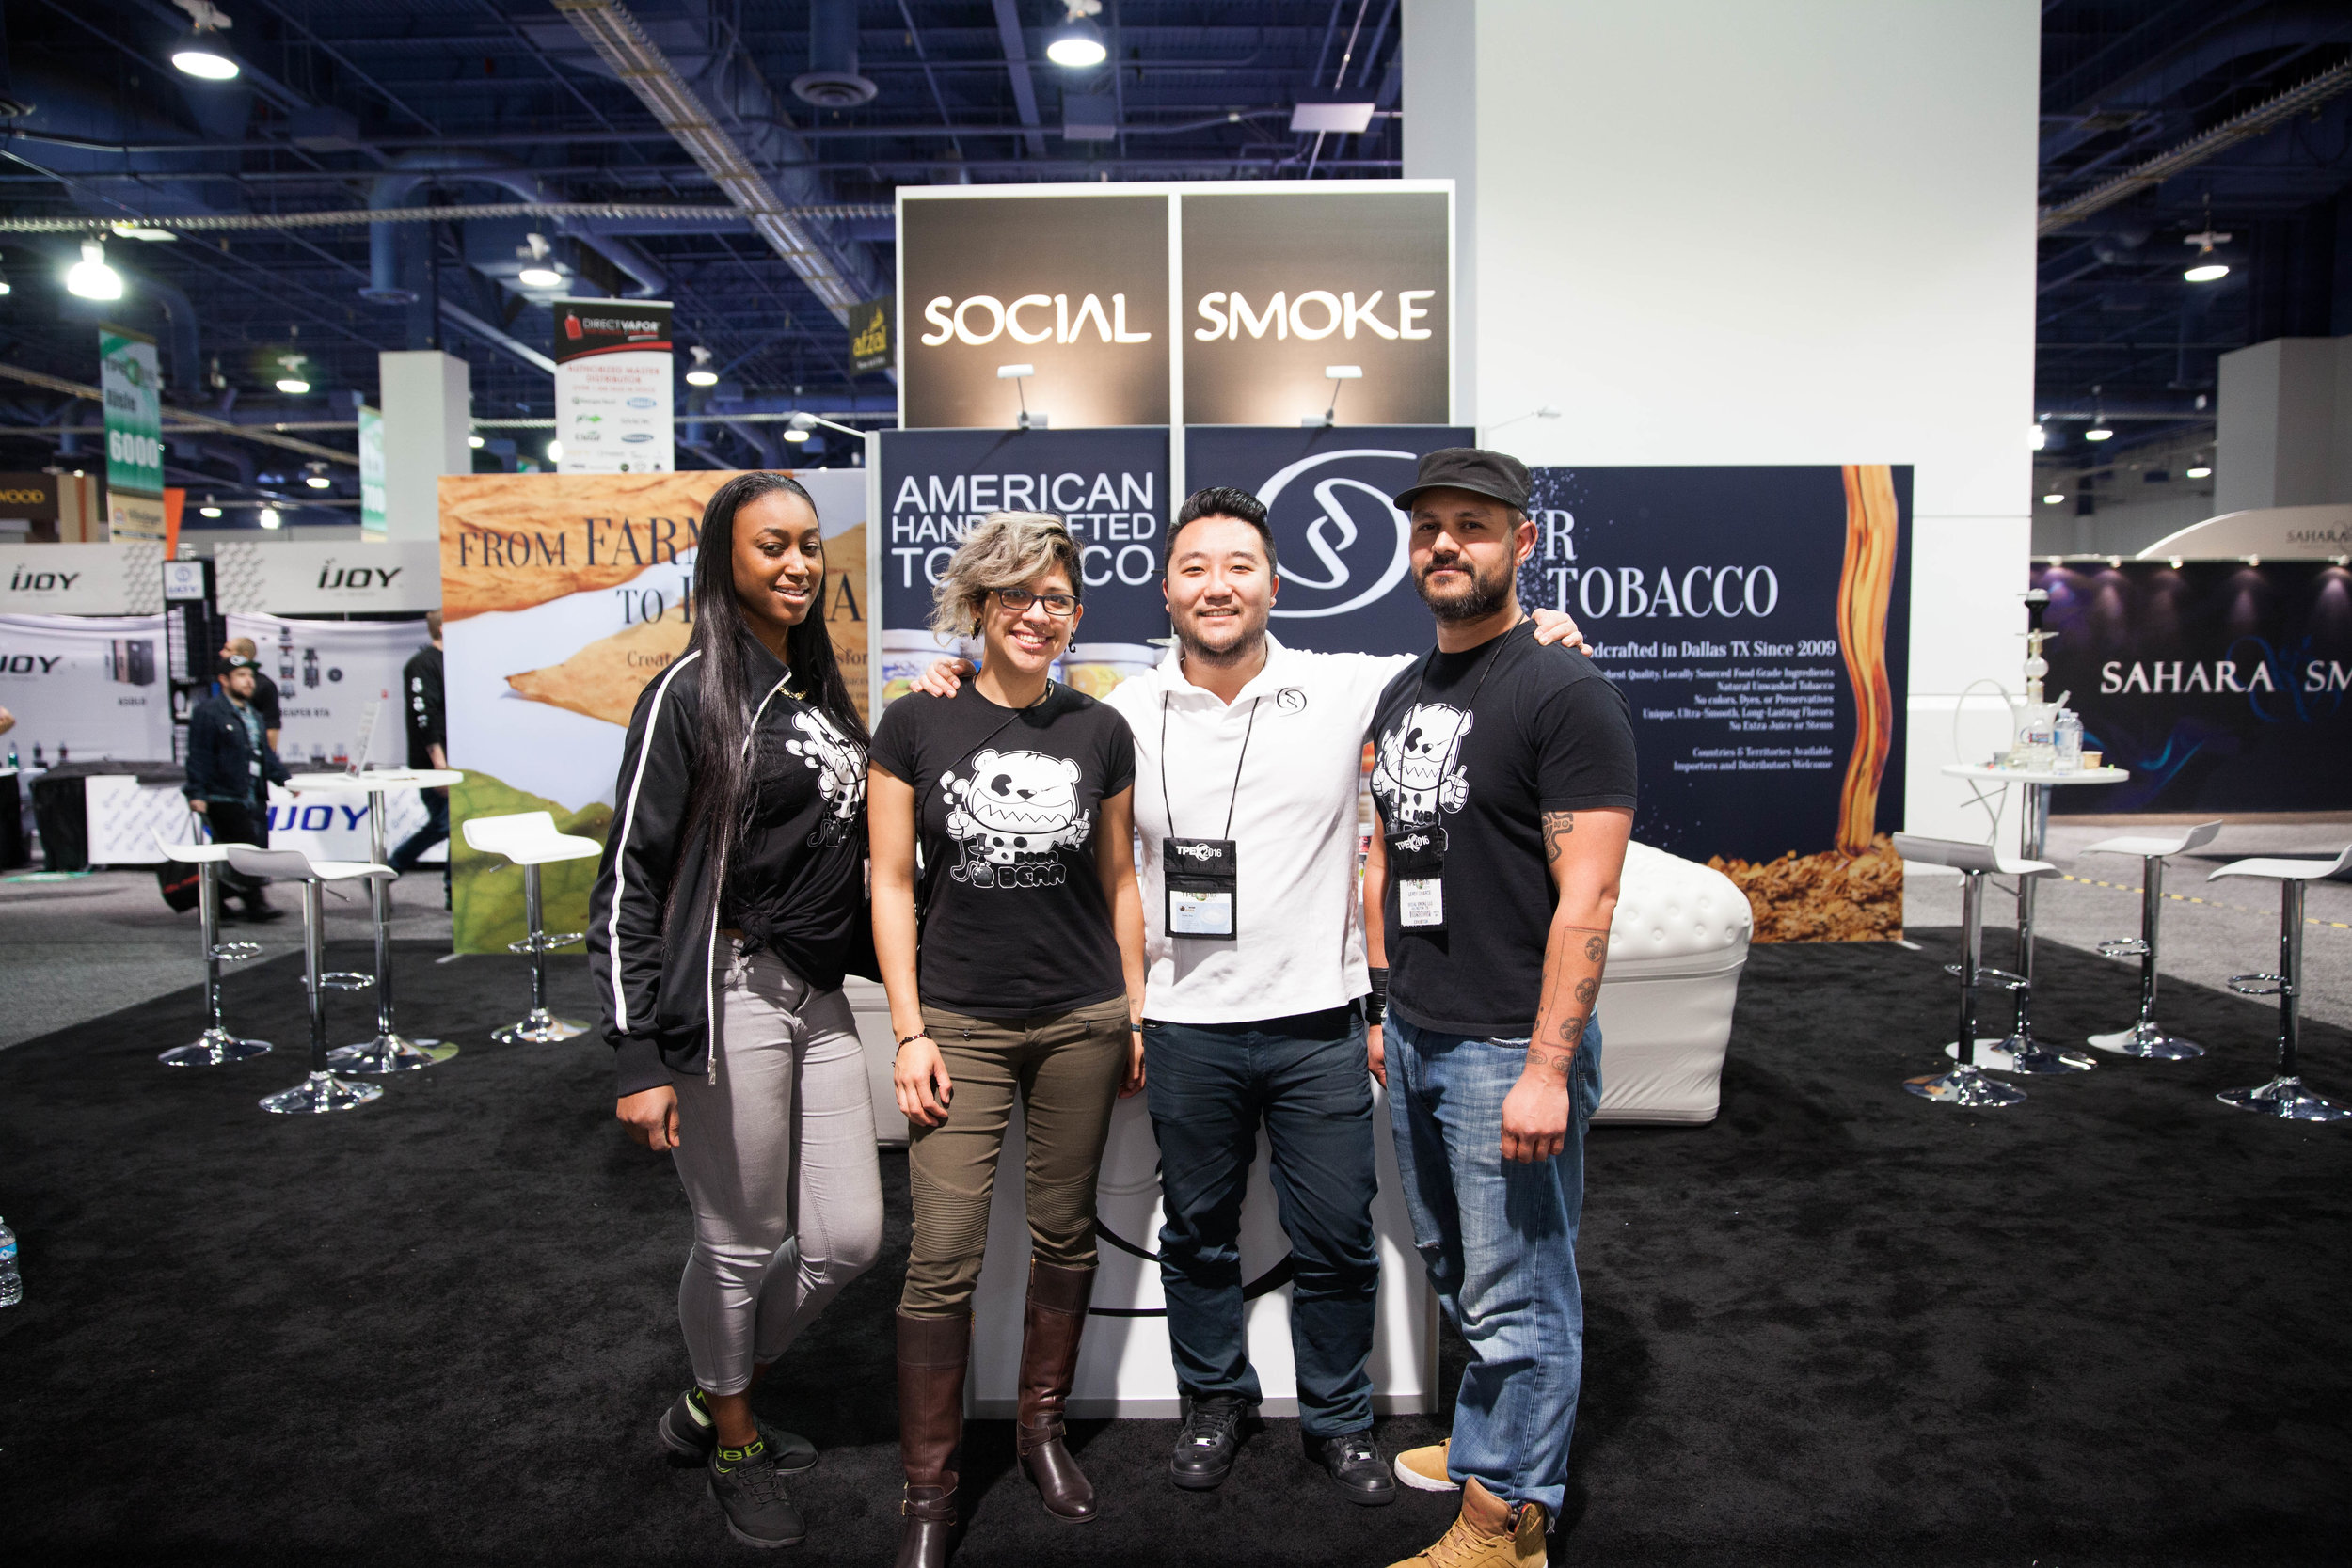 Teddy and Boba Bear Staff working with Social Smoke at the 2016 TPE Show in Las Vegas